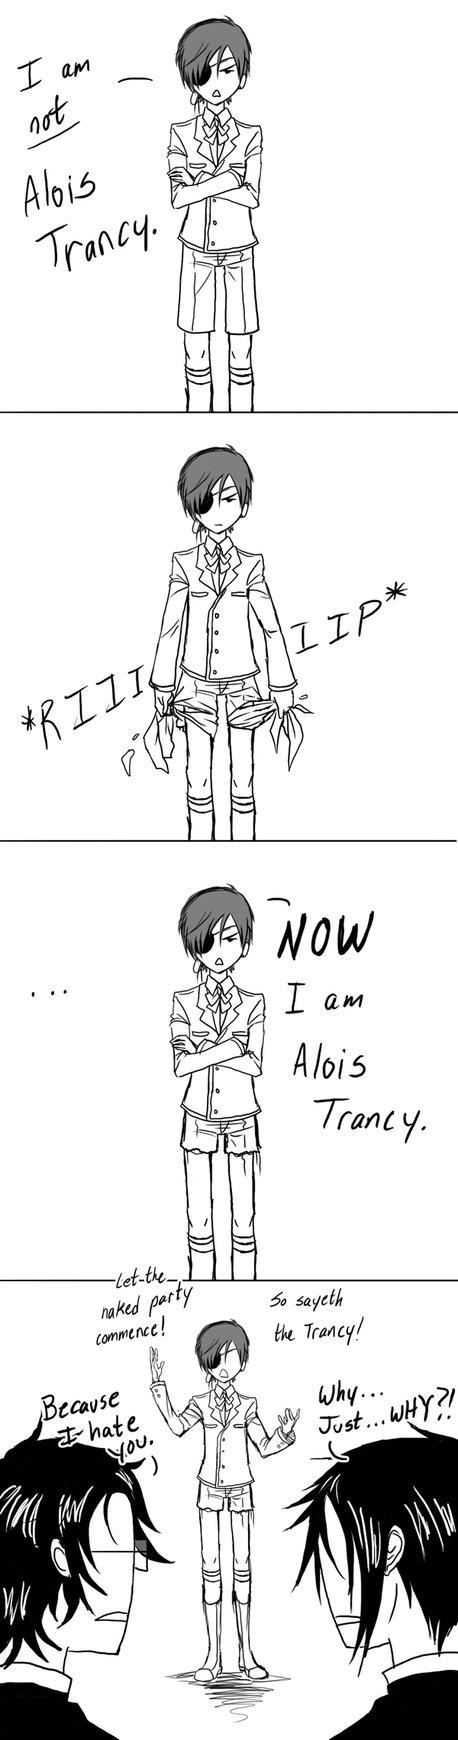 vly alois trancy ole black butler pinterest black vly alois trancy ole black butler pinterest black butler kuroshitsuji and black butler alois biocorpaavc Image collections